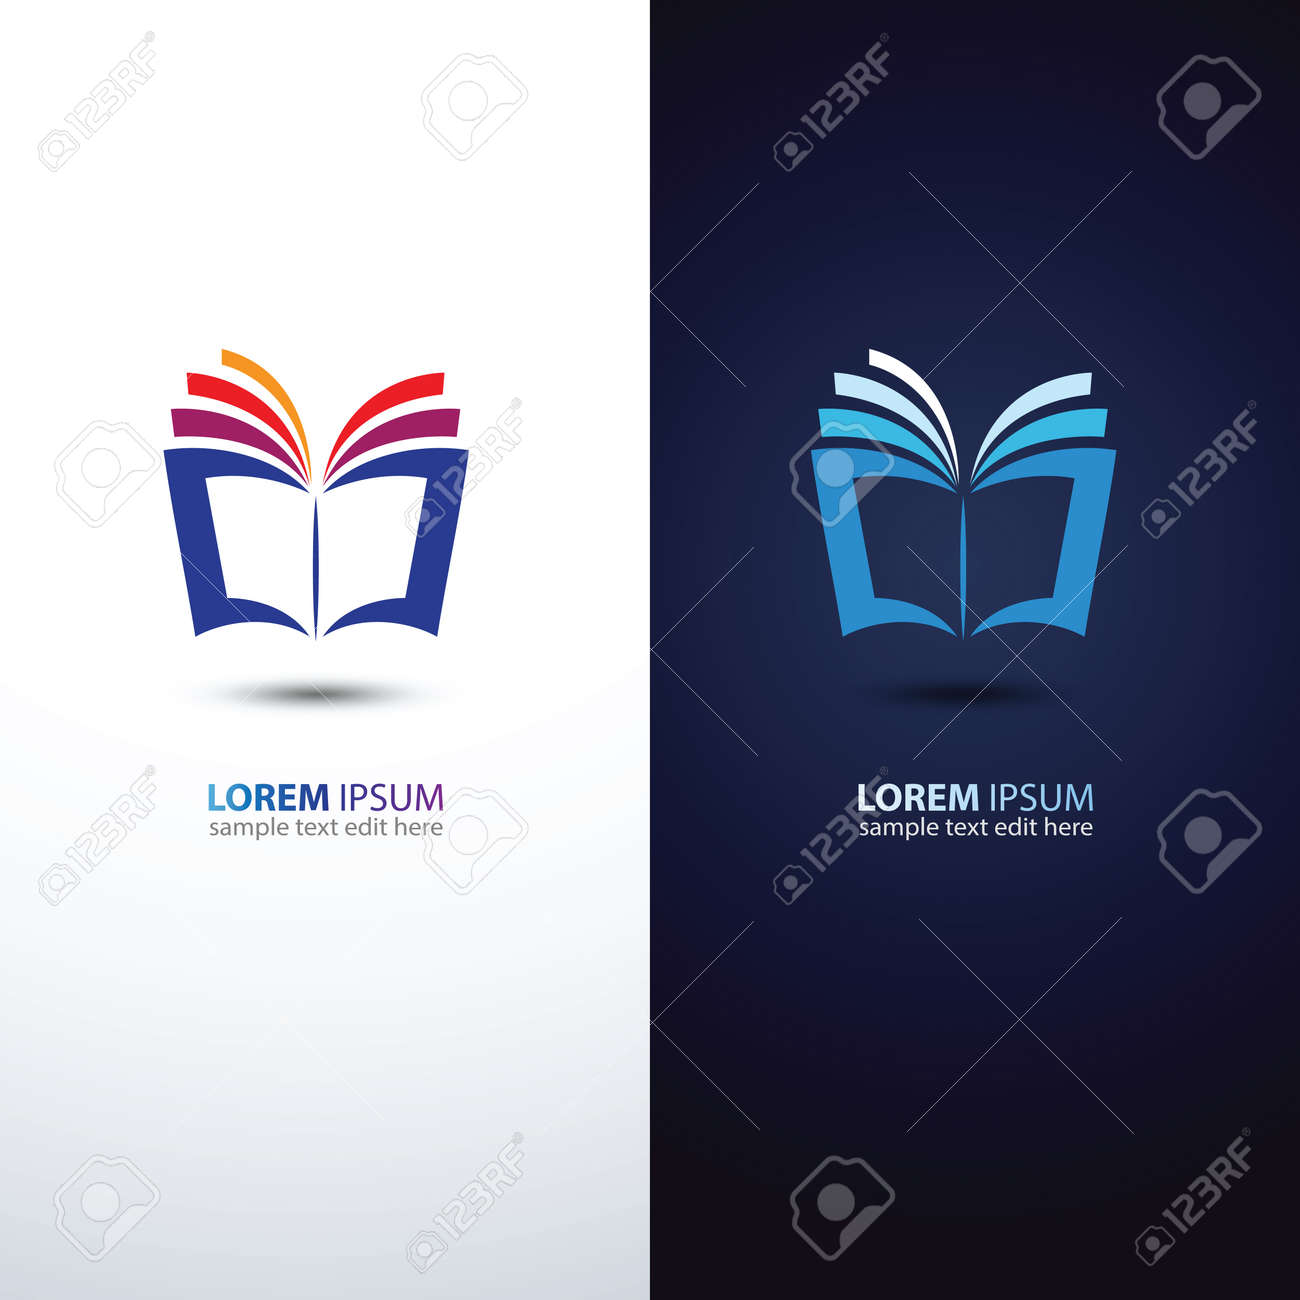 colorful book icon,vector illustration Stock Vector - 46185999